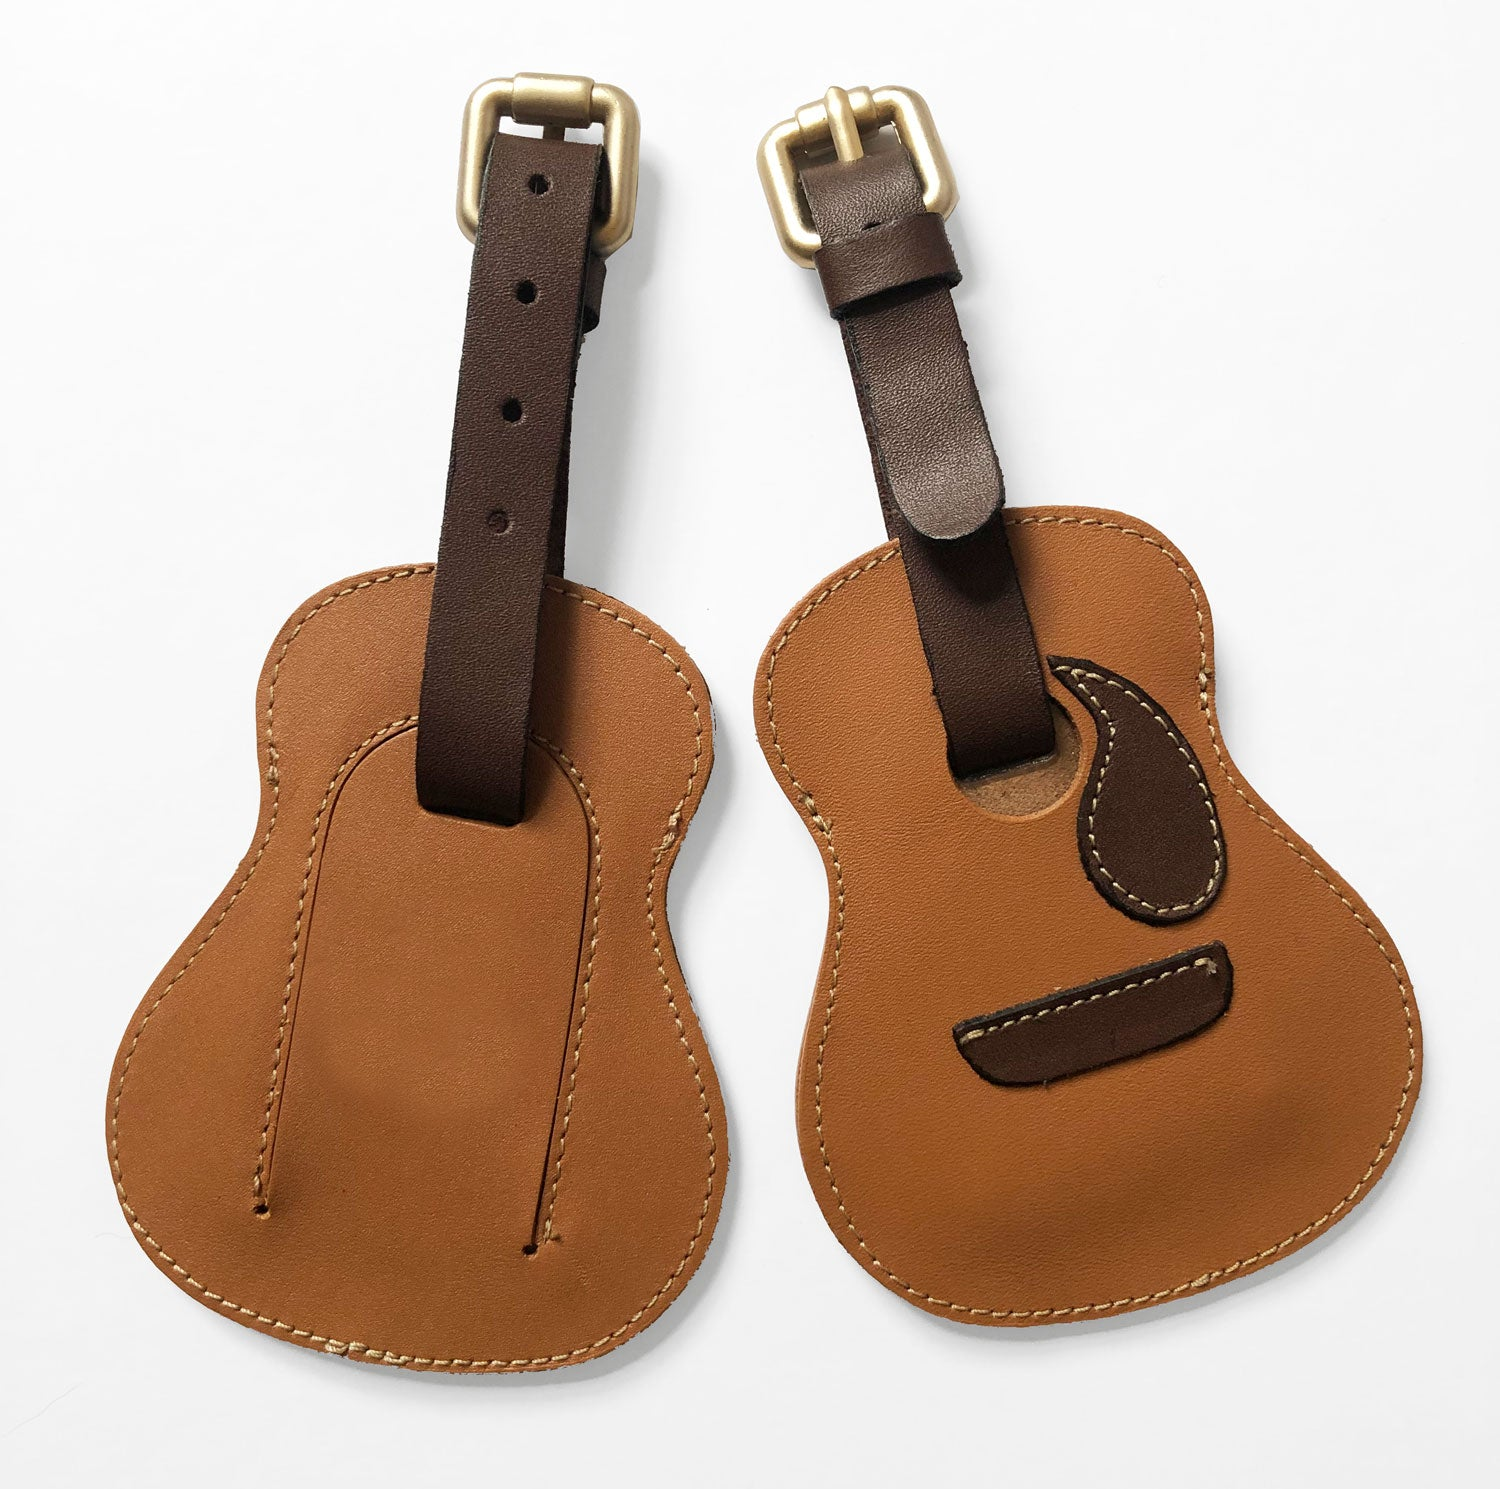 Guitar-shaped Leather Luggage Tags